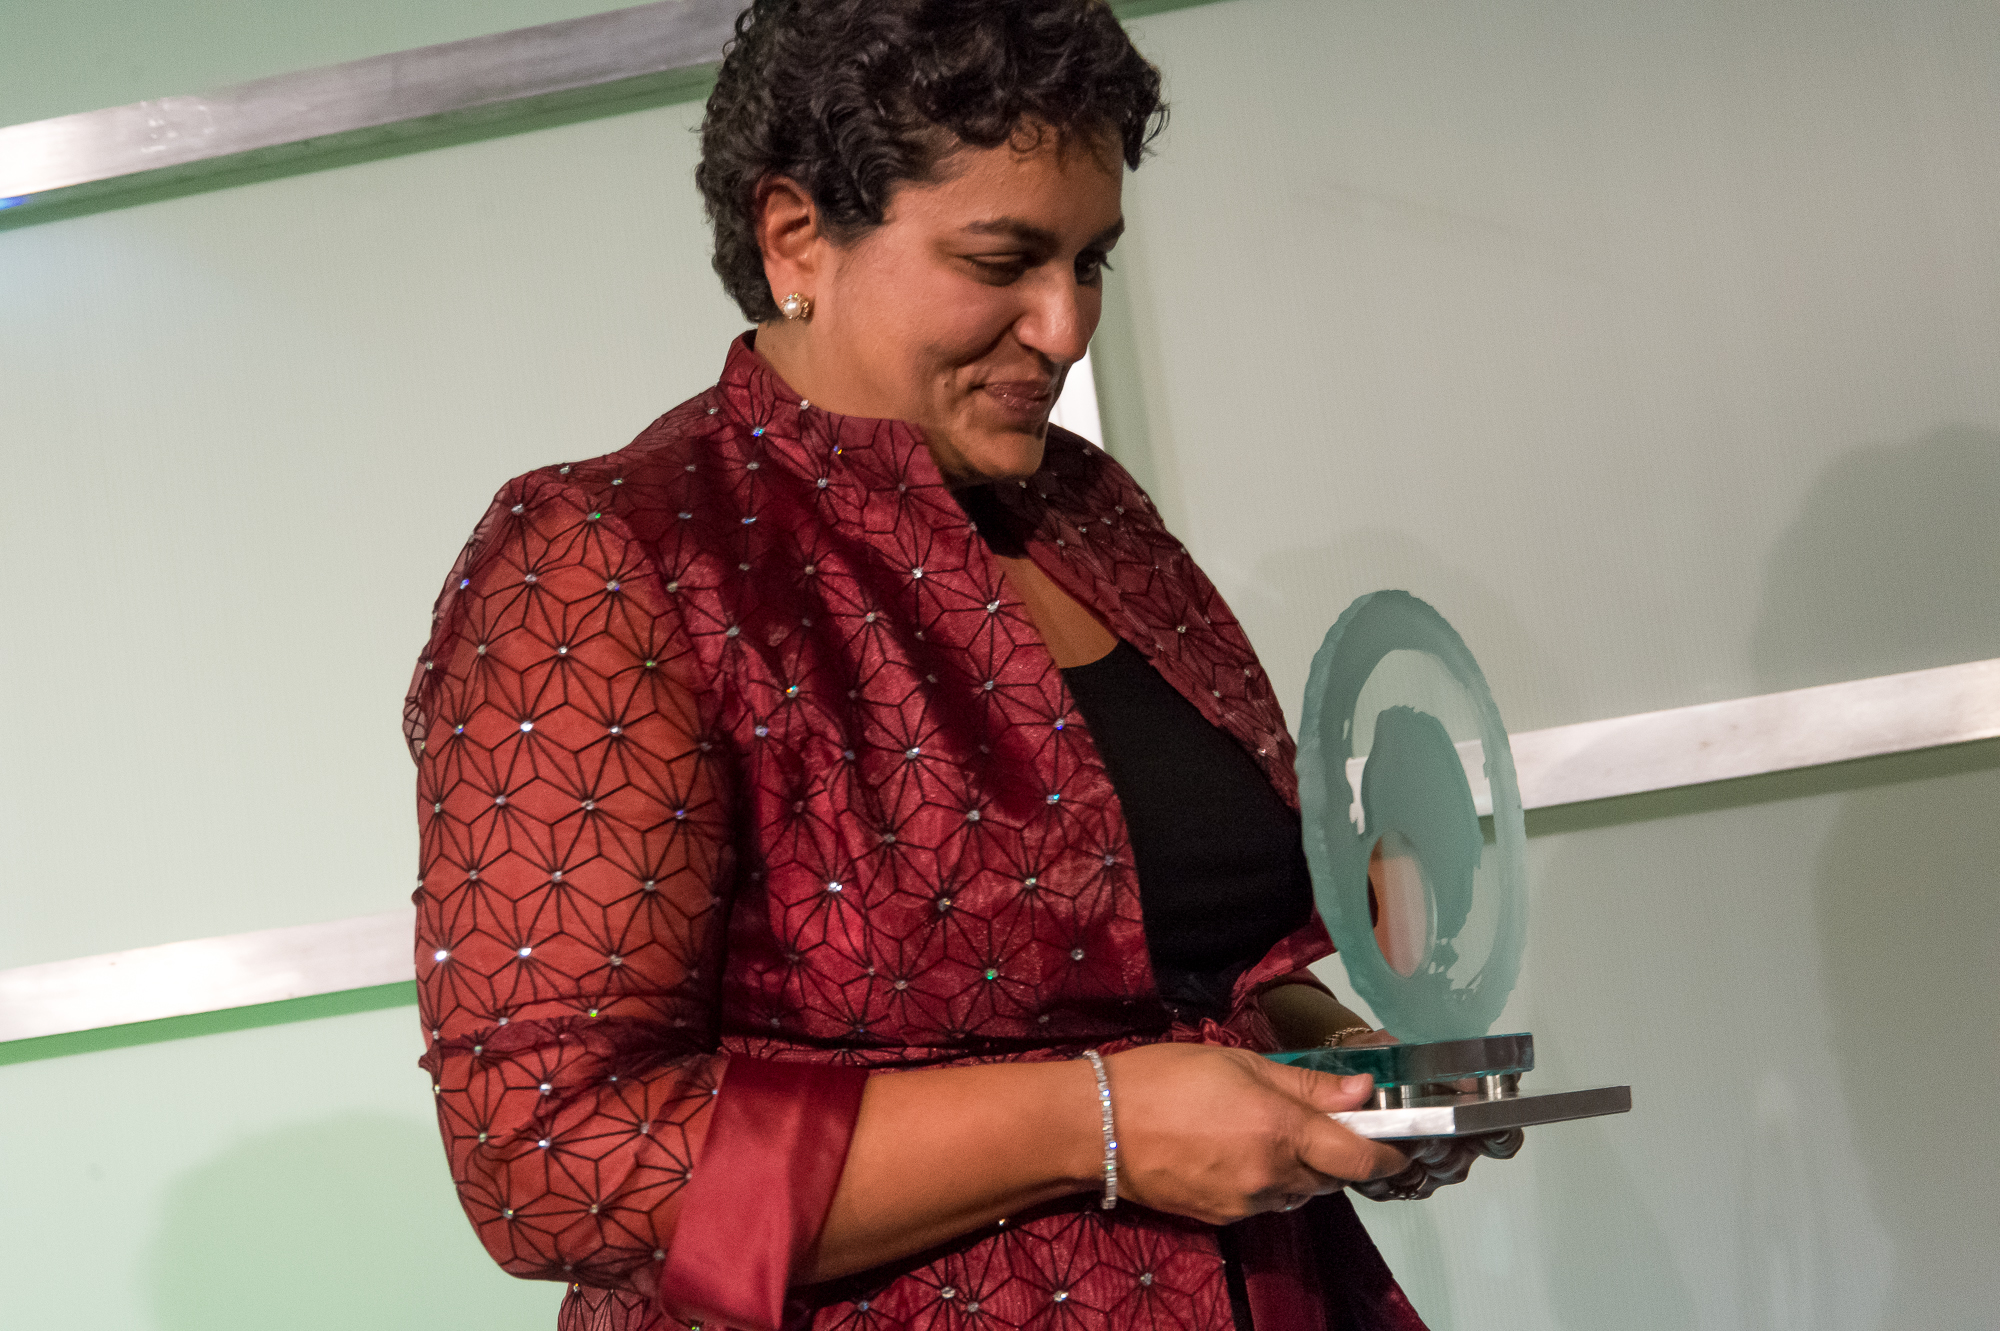 Video: 2013 Dr. Rogers Prize Winner Dr. Sunita Vohra